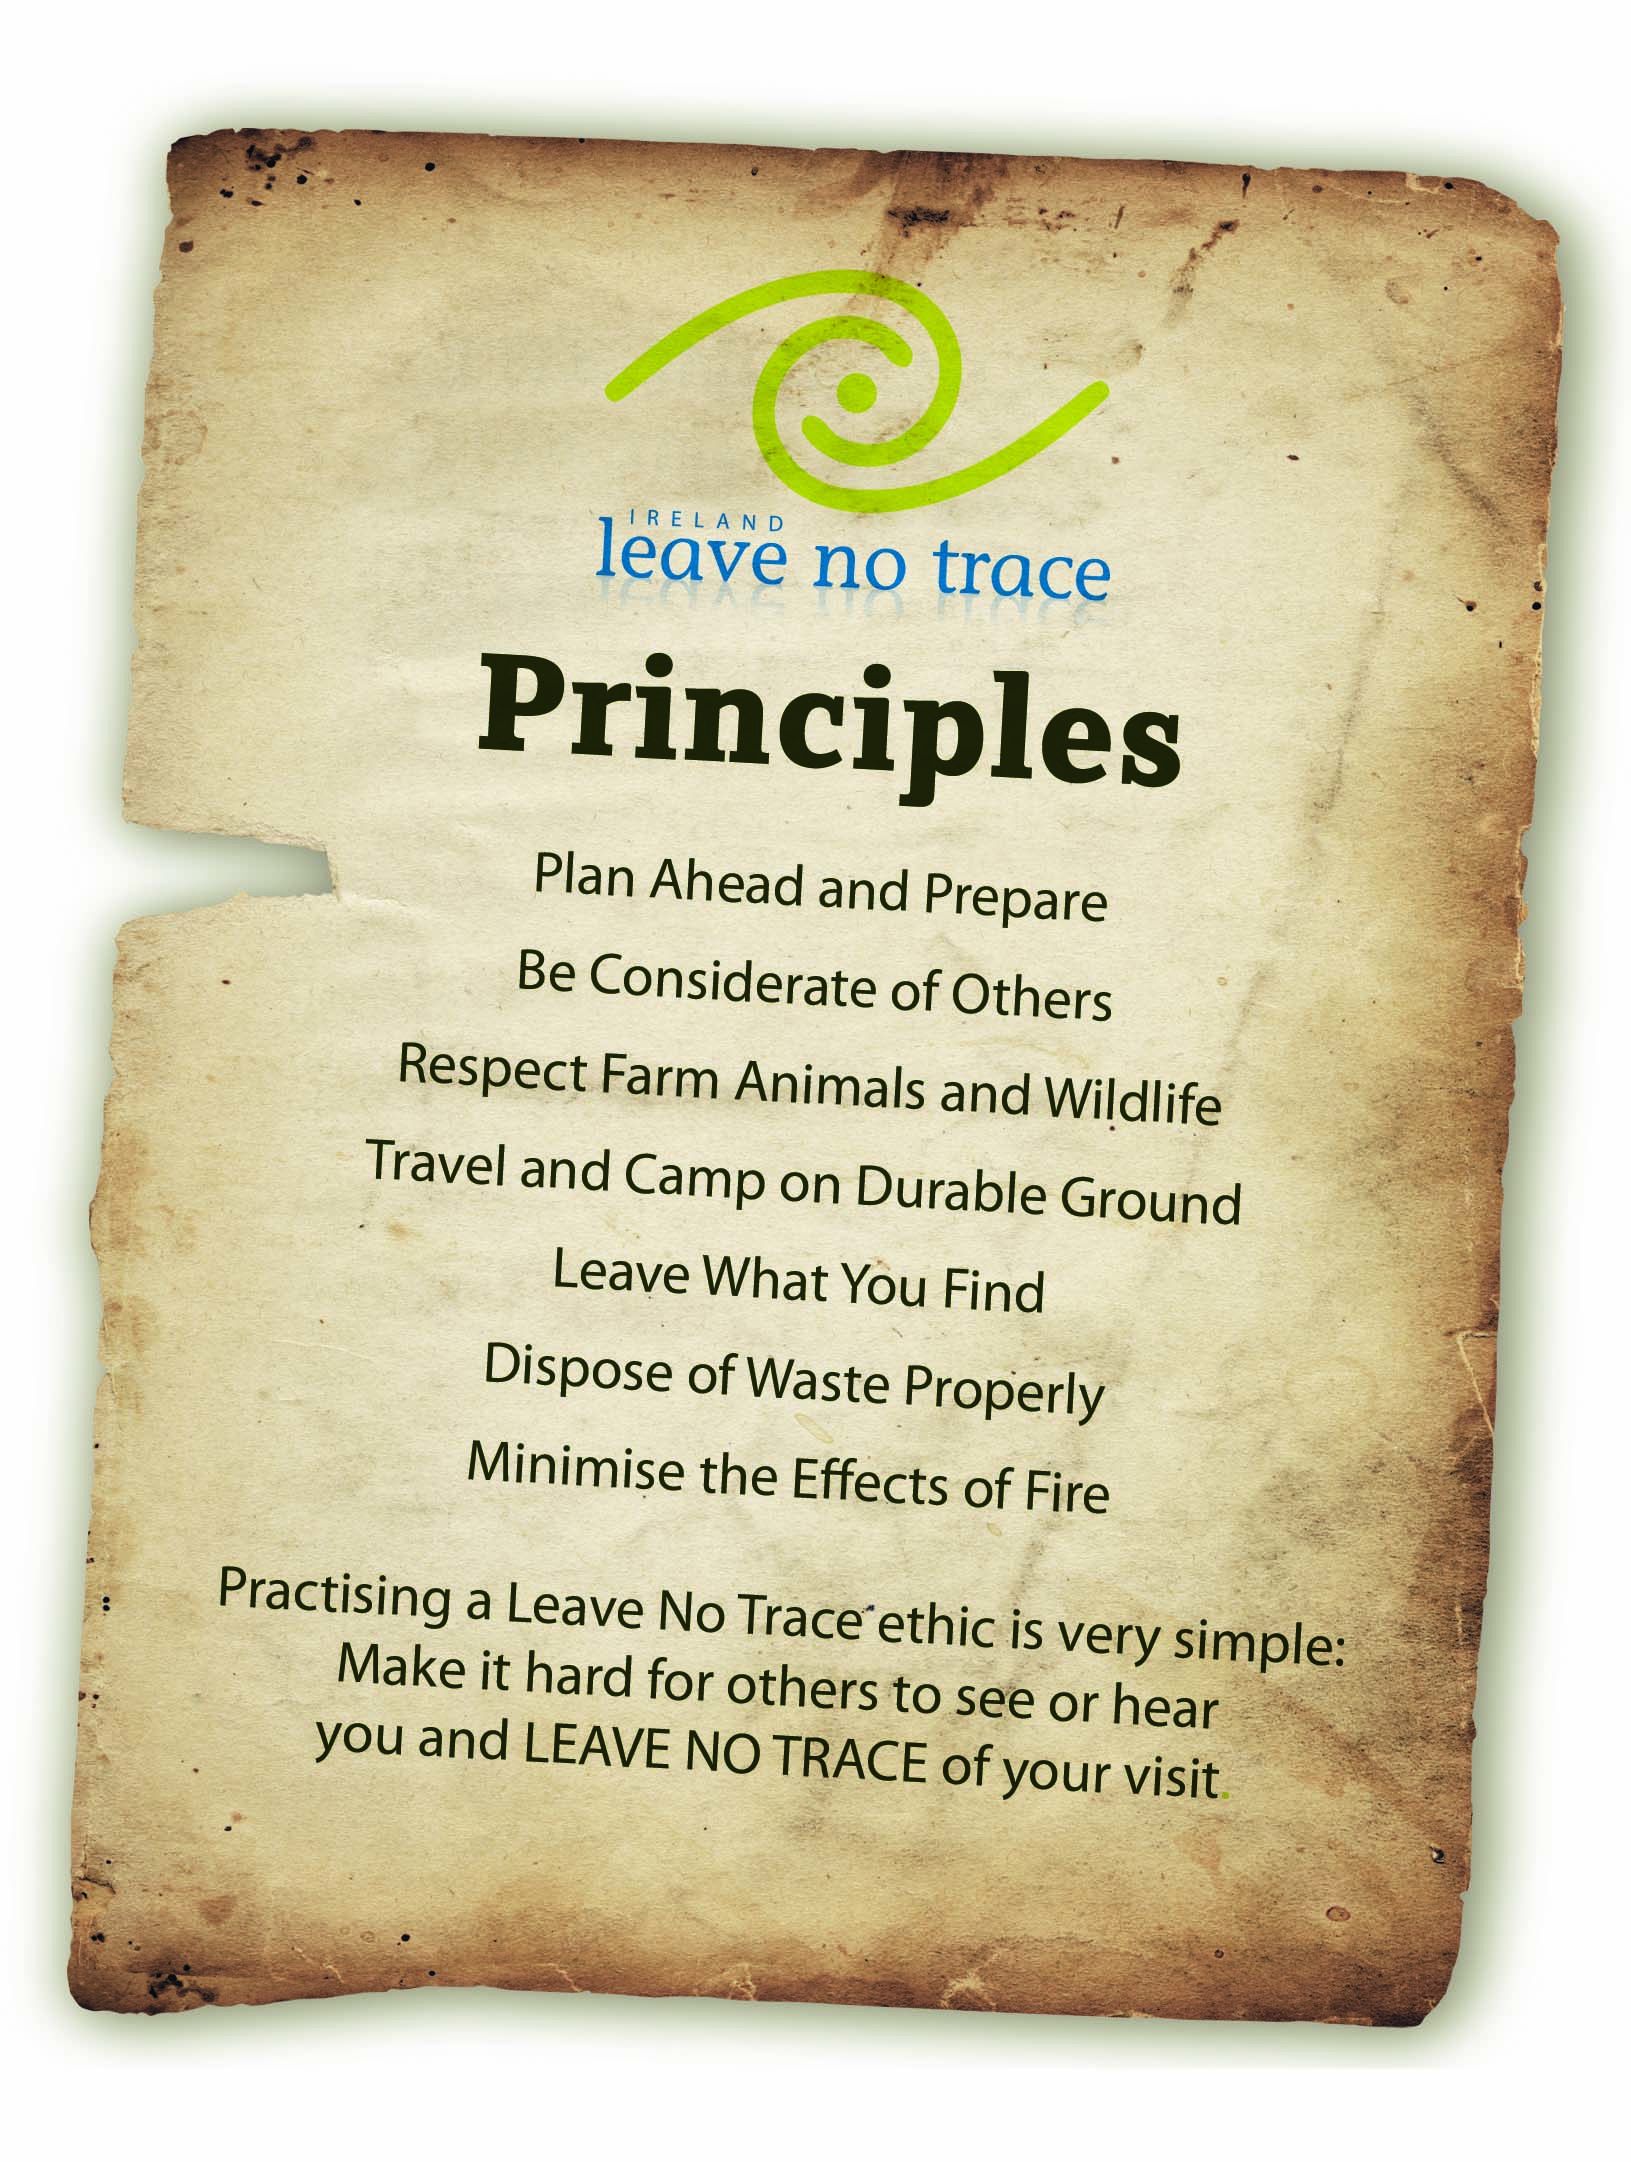 2_1_2_Leave_No_Trace_Principles_Image.jpg